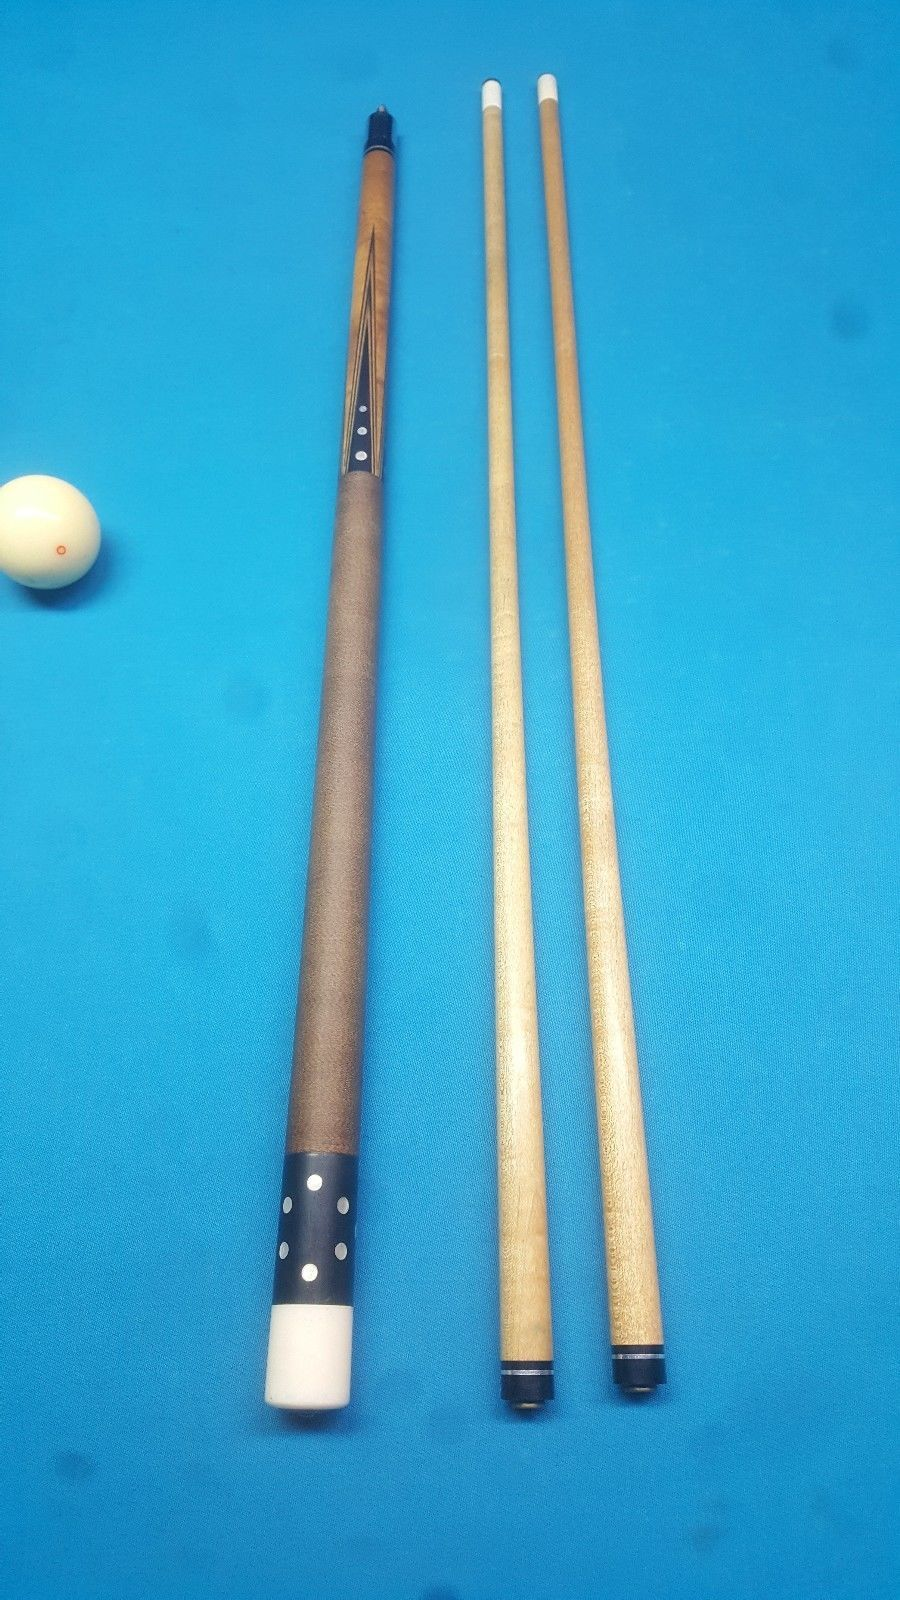 Original george balabushka pool cue | Pool: vintage and modern in